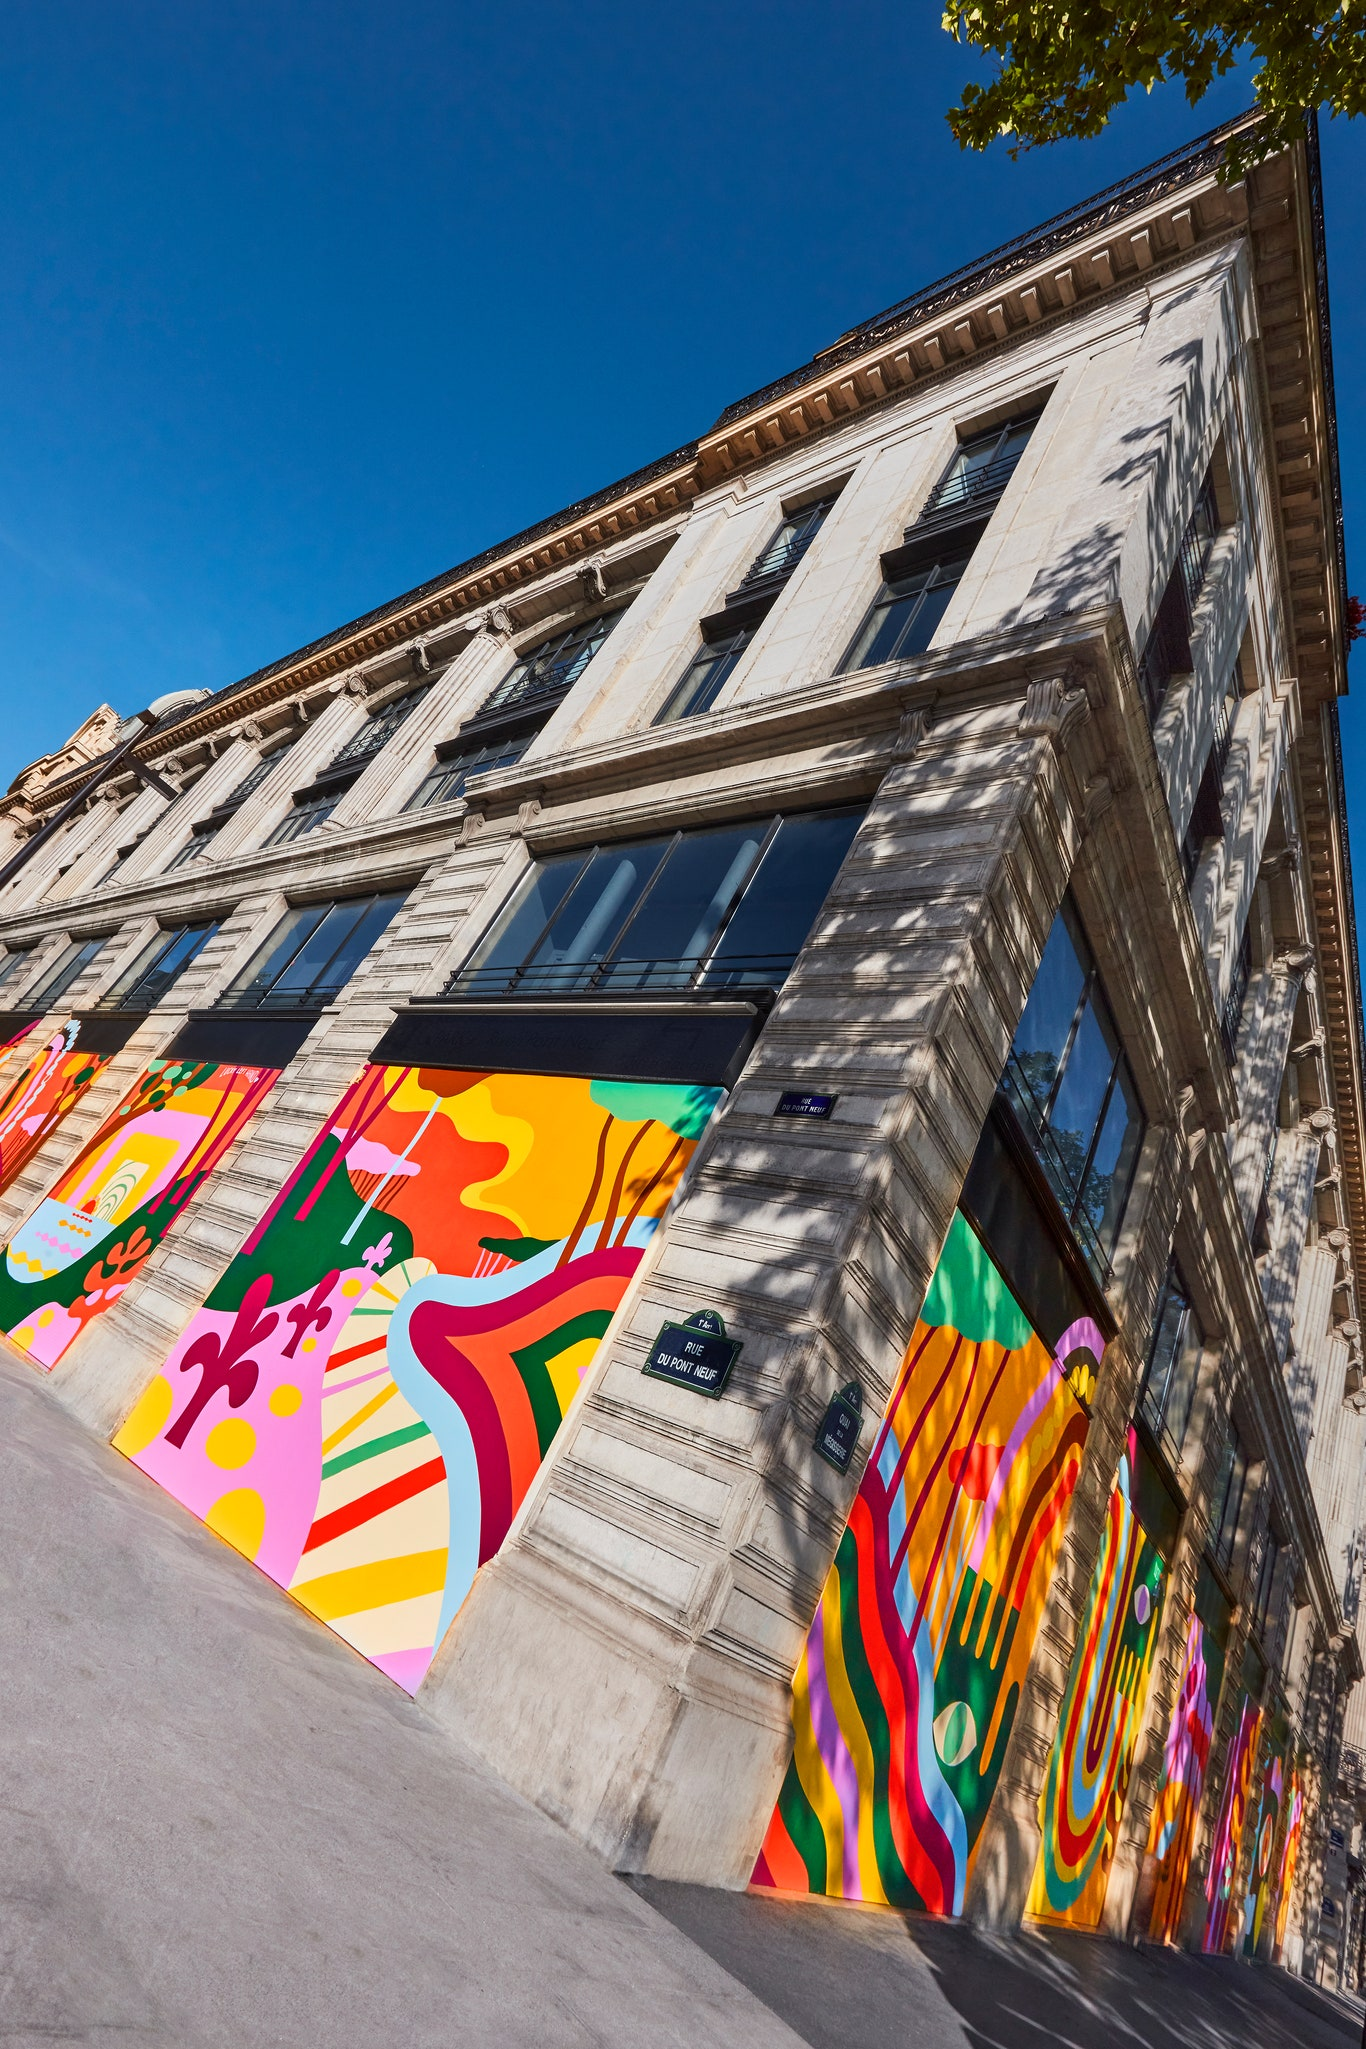 Louis Vuitton gives its Paris headquarters an uplifting mural